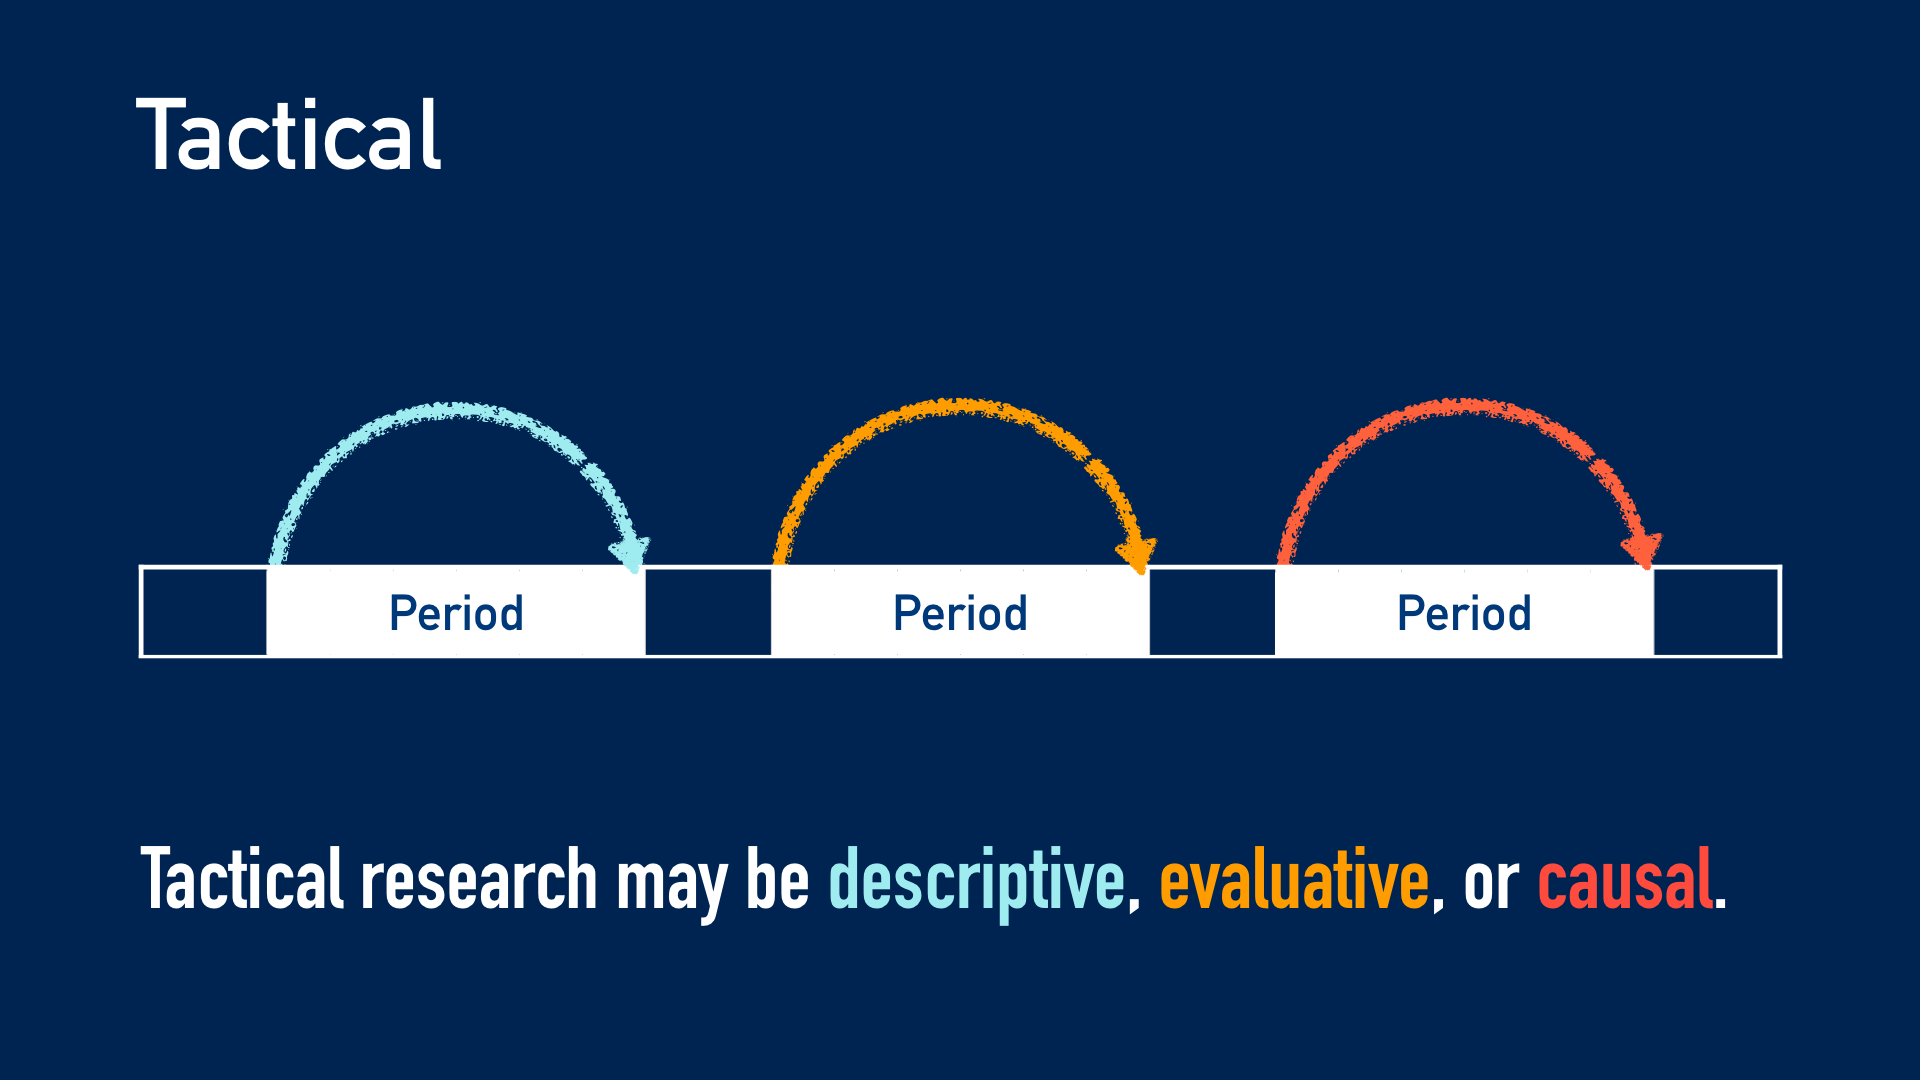 Diagram: Tactical research may be descriptive, evaluative, or causal.